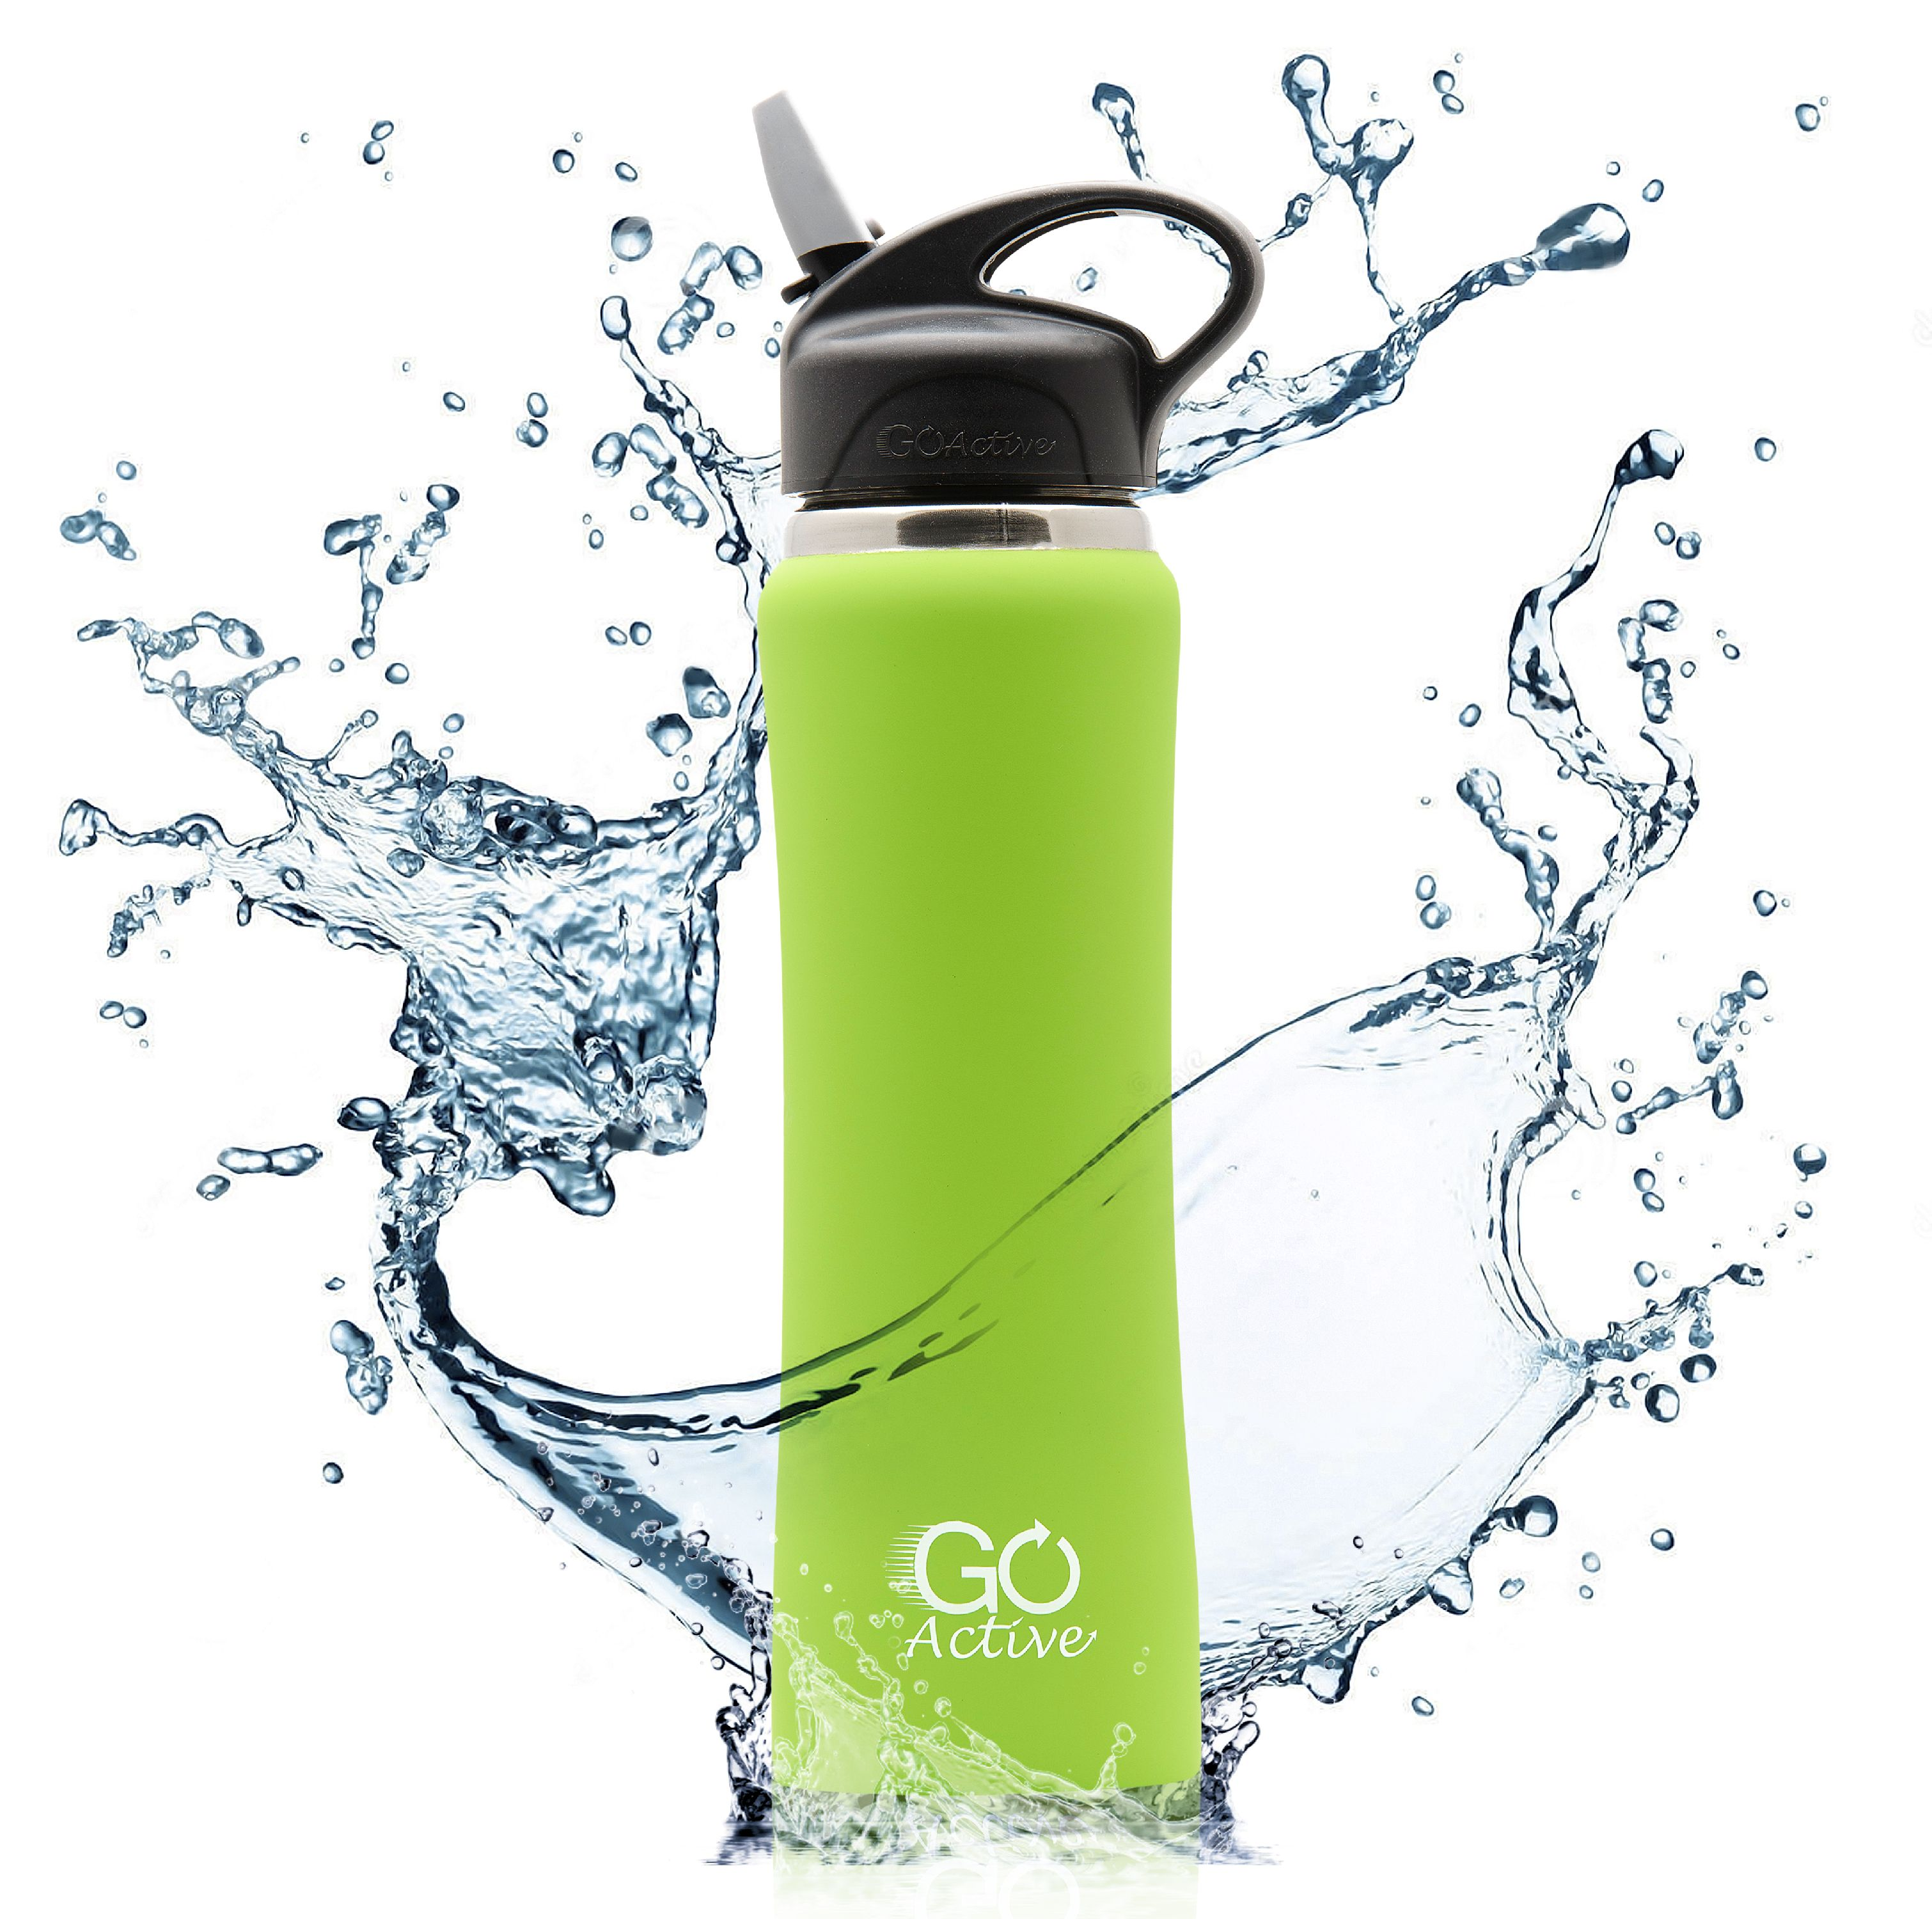 GO Active - Insulated Water Bottle with Straw. This Stainless Steel Sport Bottle is Leak Proof, Perfect for Kids, Durable, Vibrant Colors, and keeps ice over 24 hours!